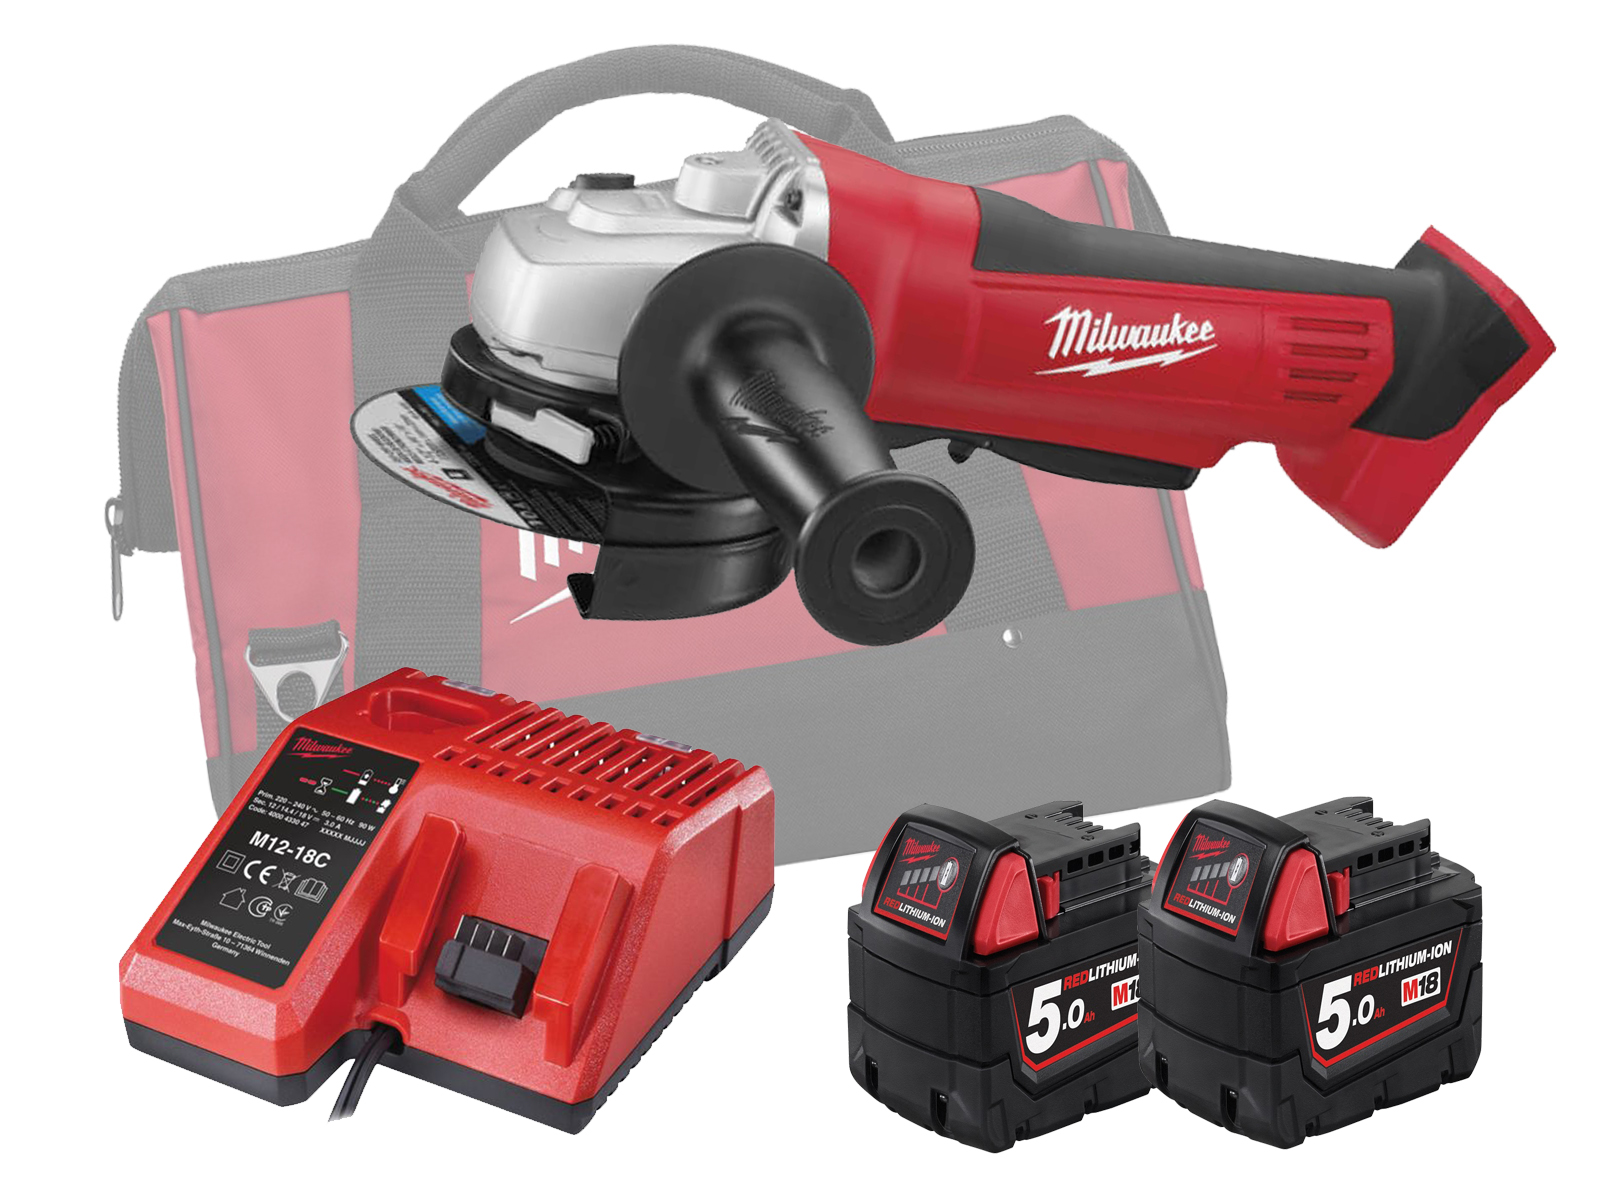 MILWAUKEE 18V HEAVY DUTY 115MM ANGLE GRINDER - HD18AG115 - 5.0AH PACK